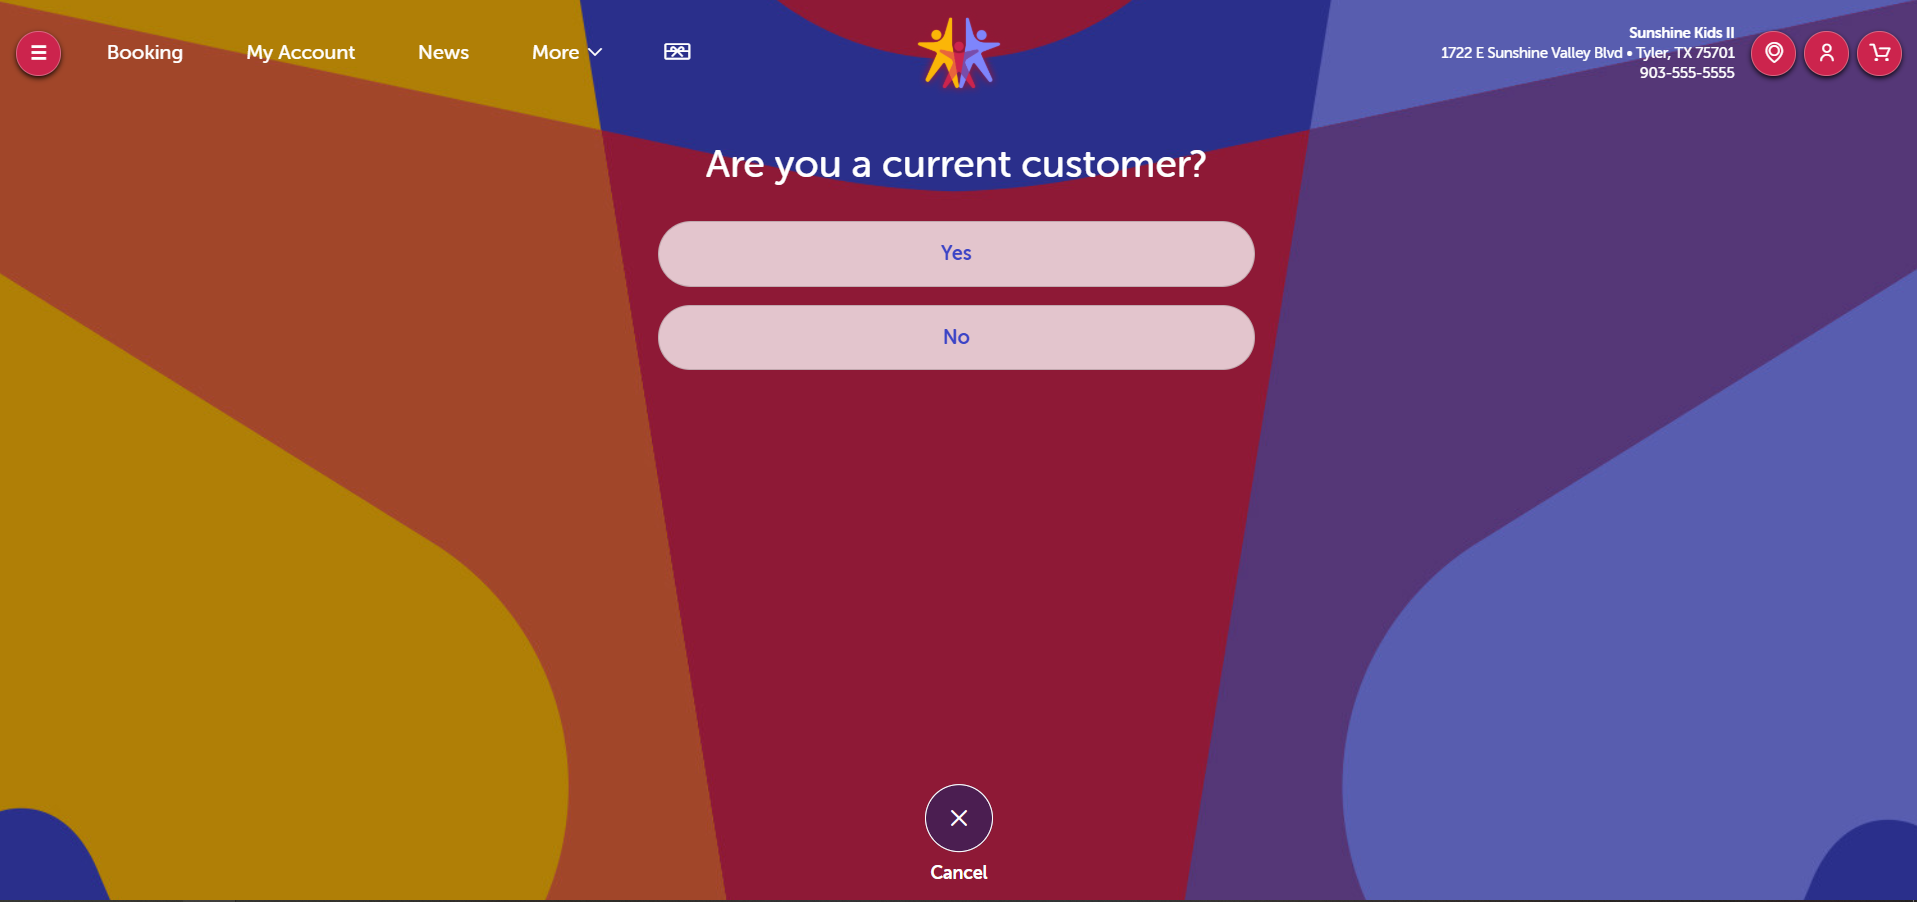 CustomerPortalInterface04.png